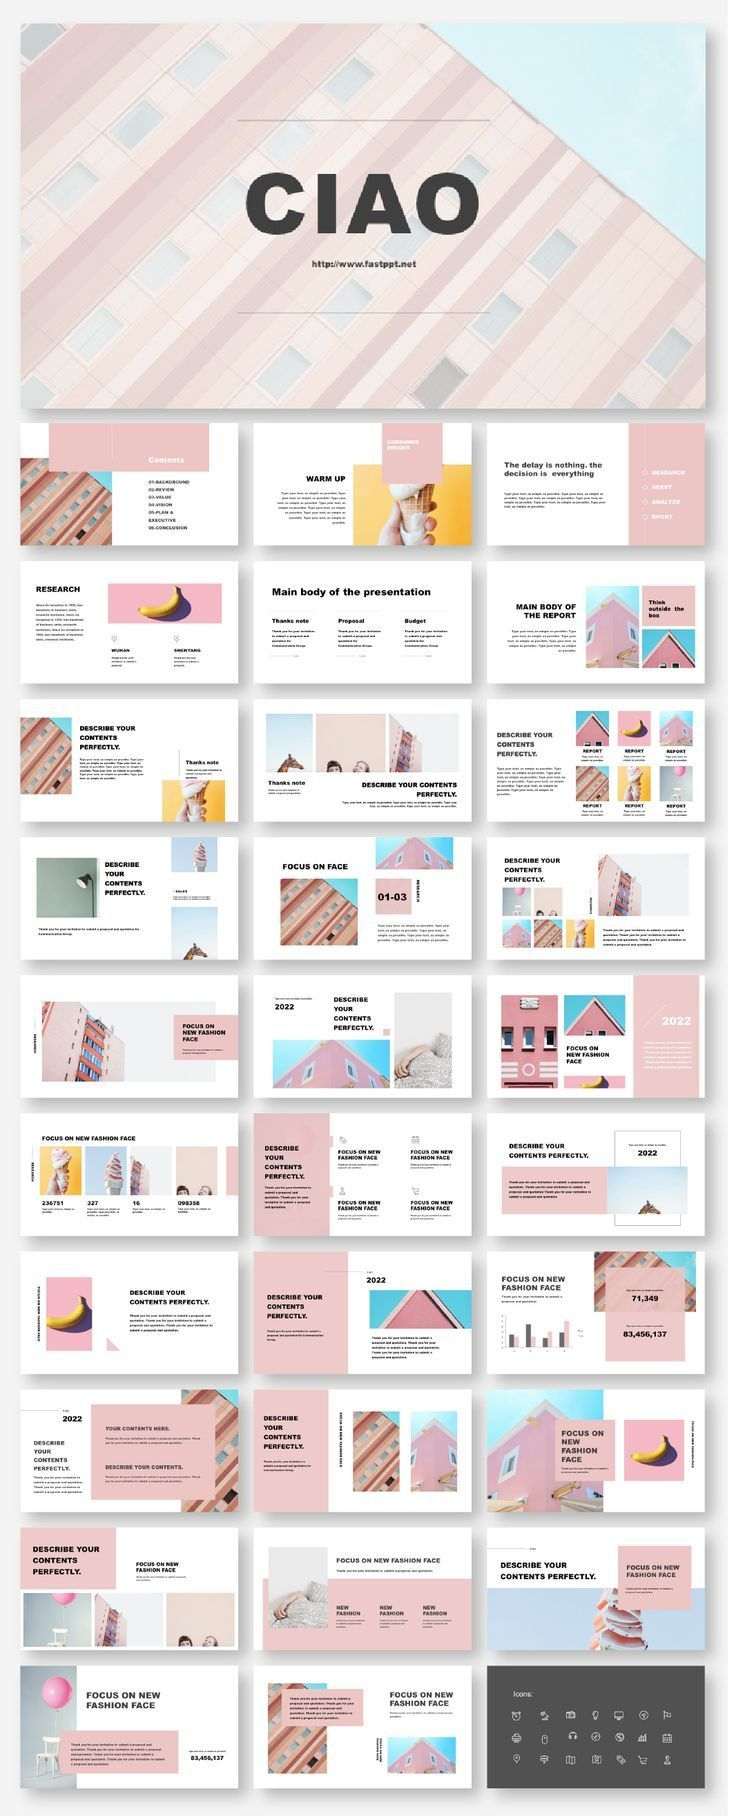 Creative Fashion Photo Layout Presentation Template – Original and high quality PowerPoint Templates download